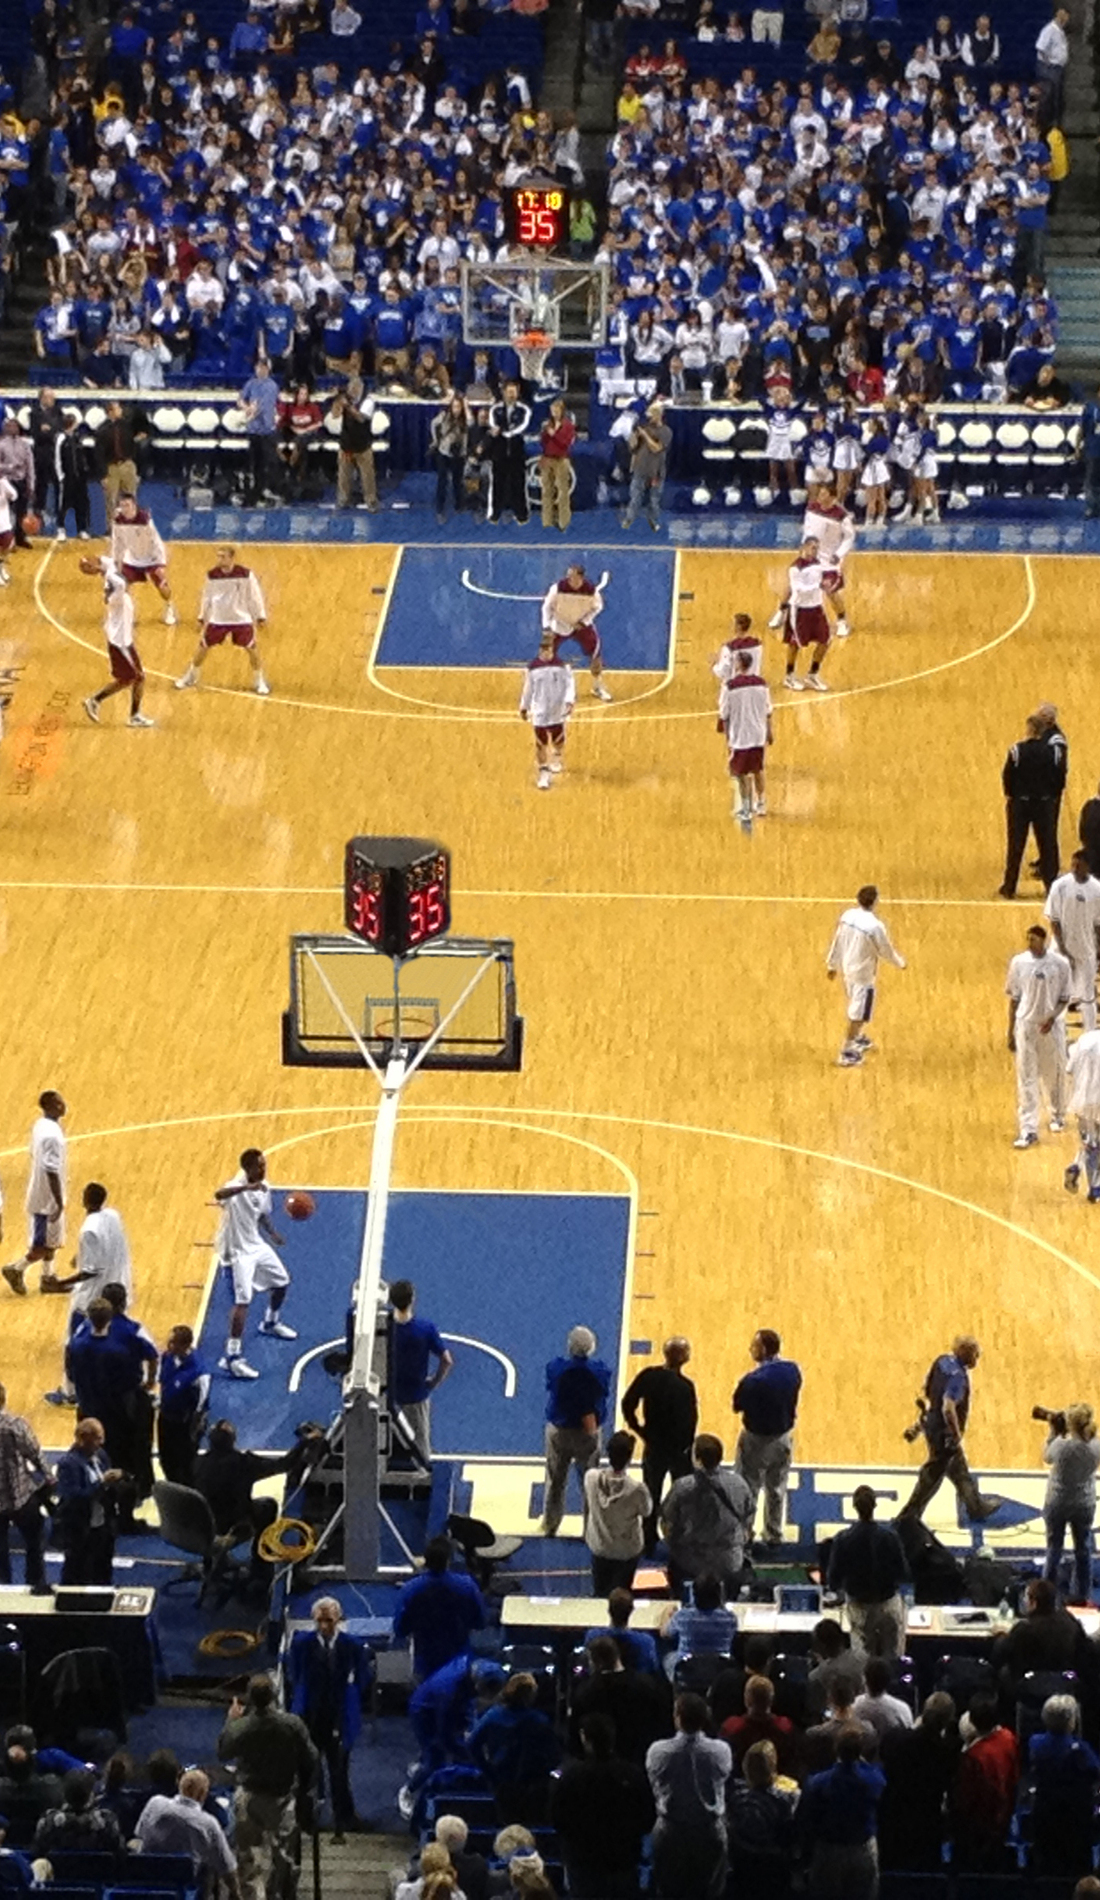 A Kentucky Wildcats Basketball live event